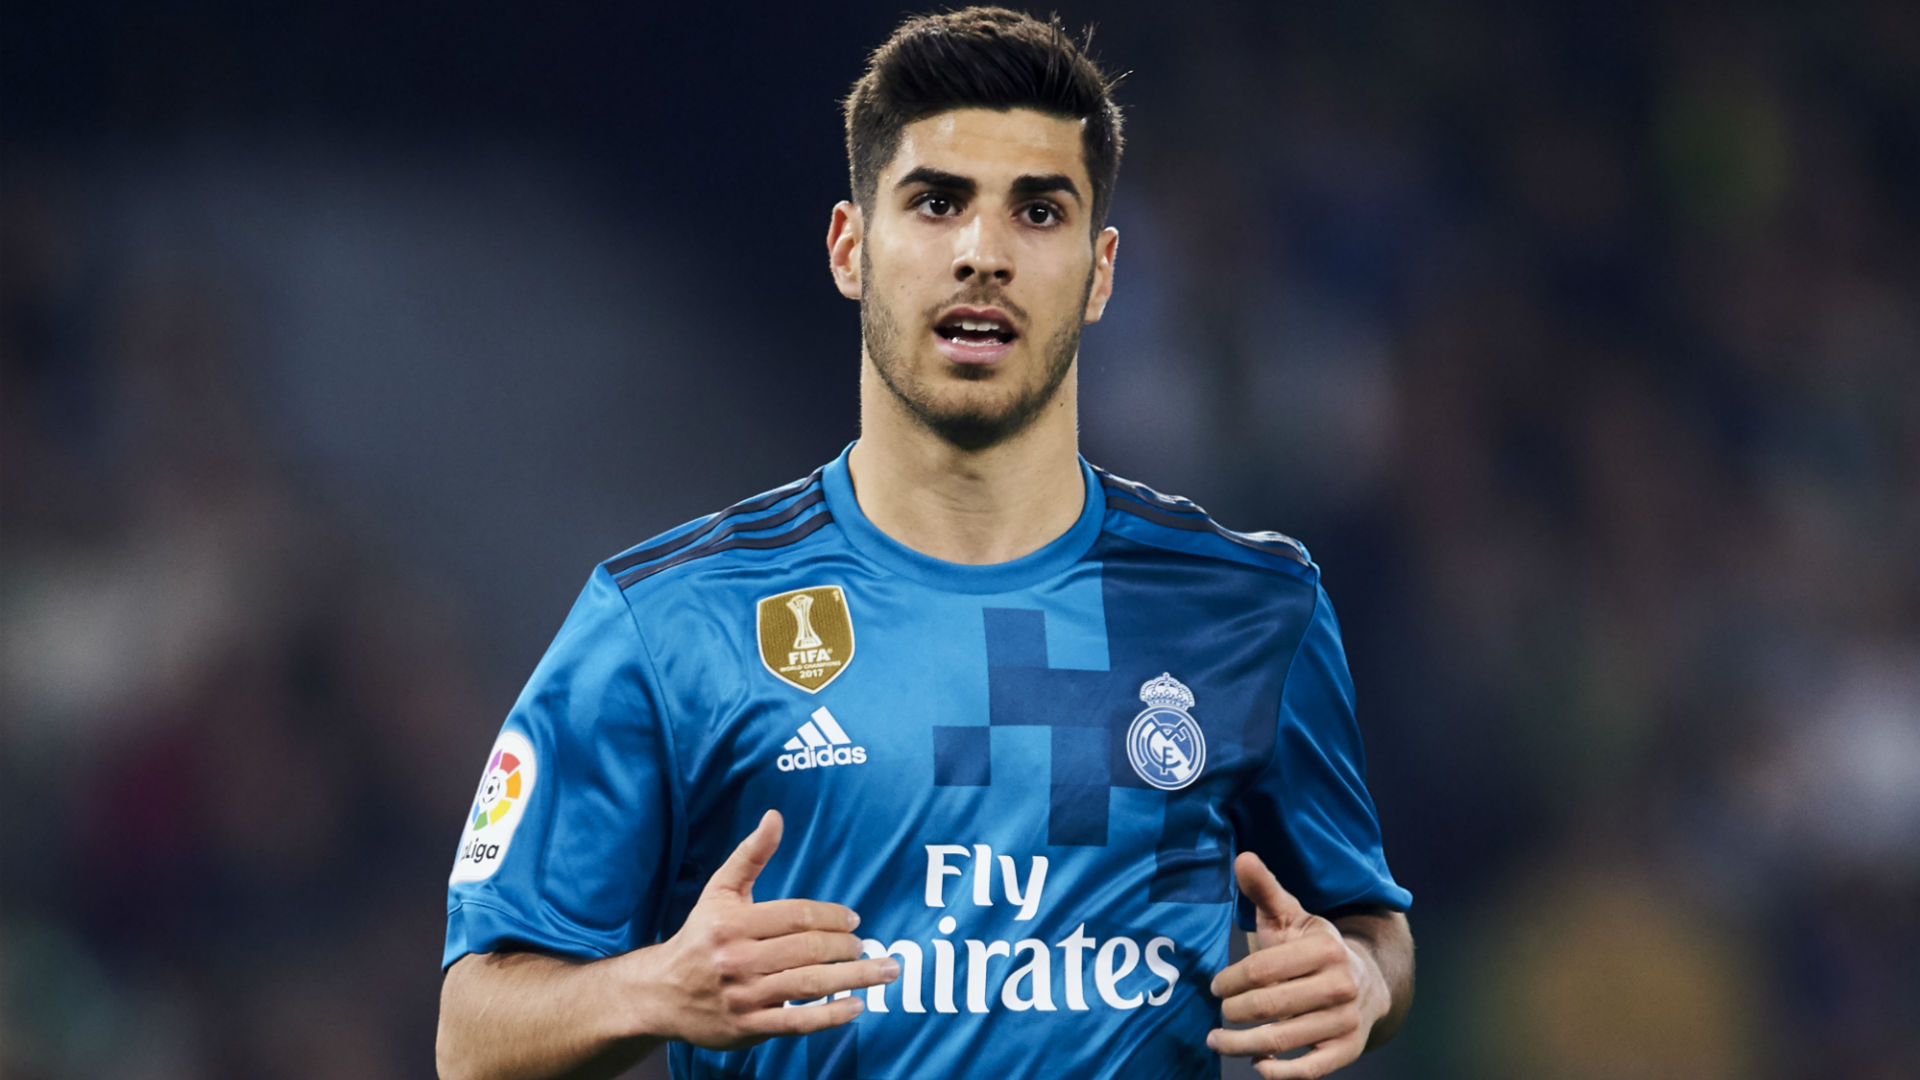 Asensio Insists Zidane Has Not Treated Him Unfairly